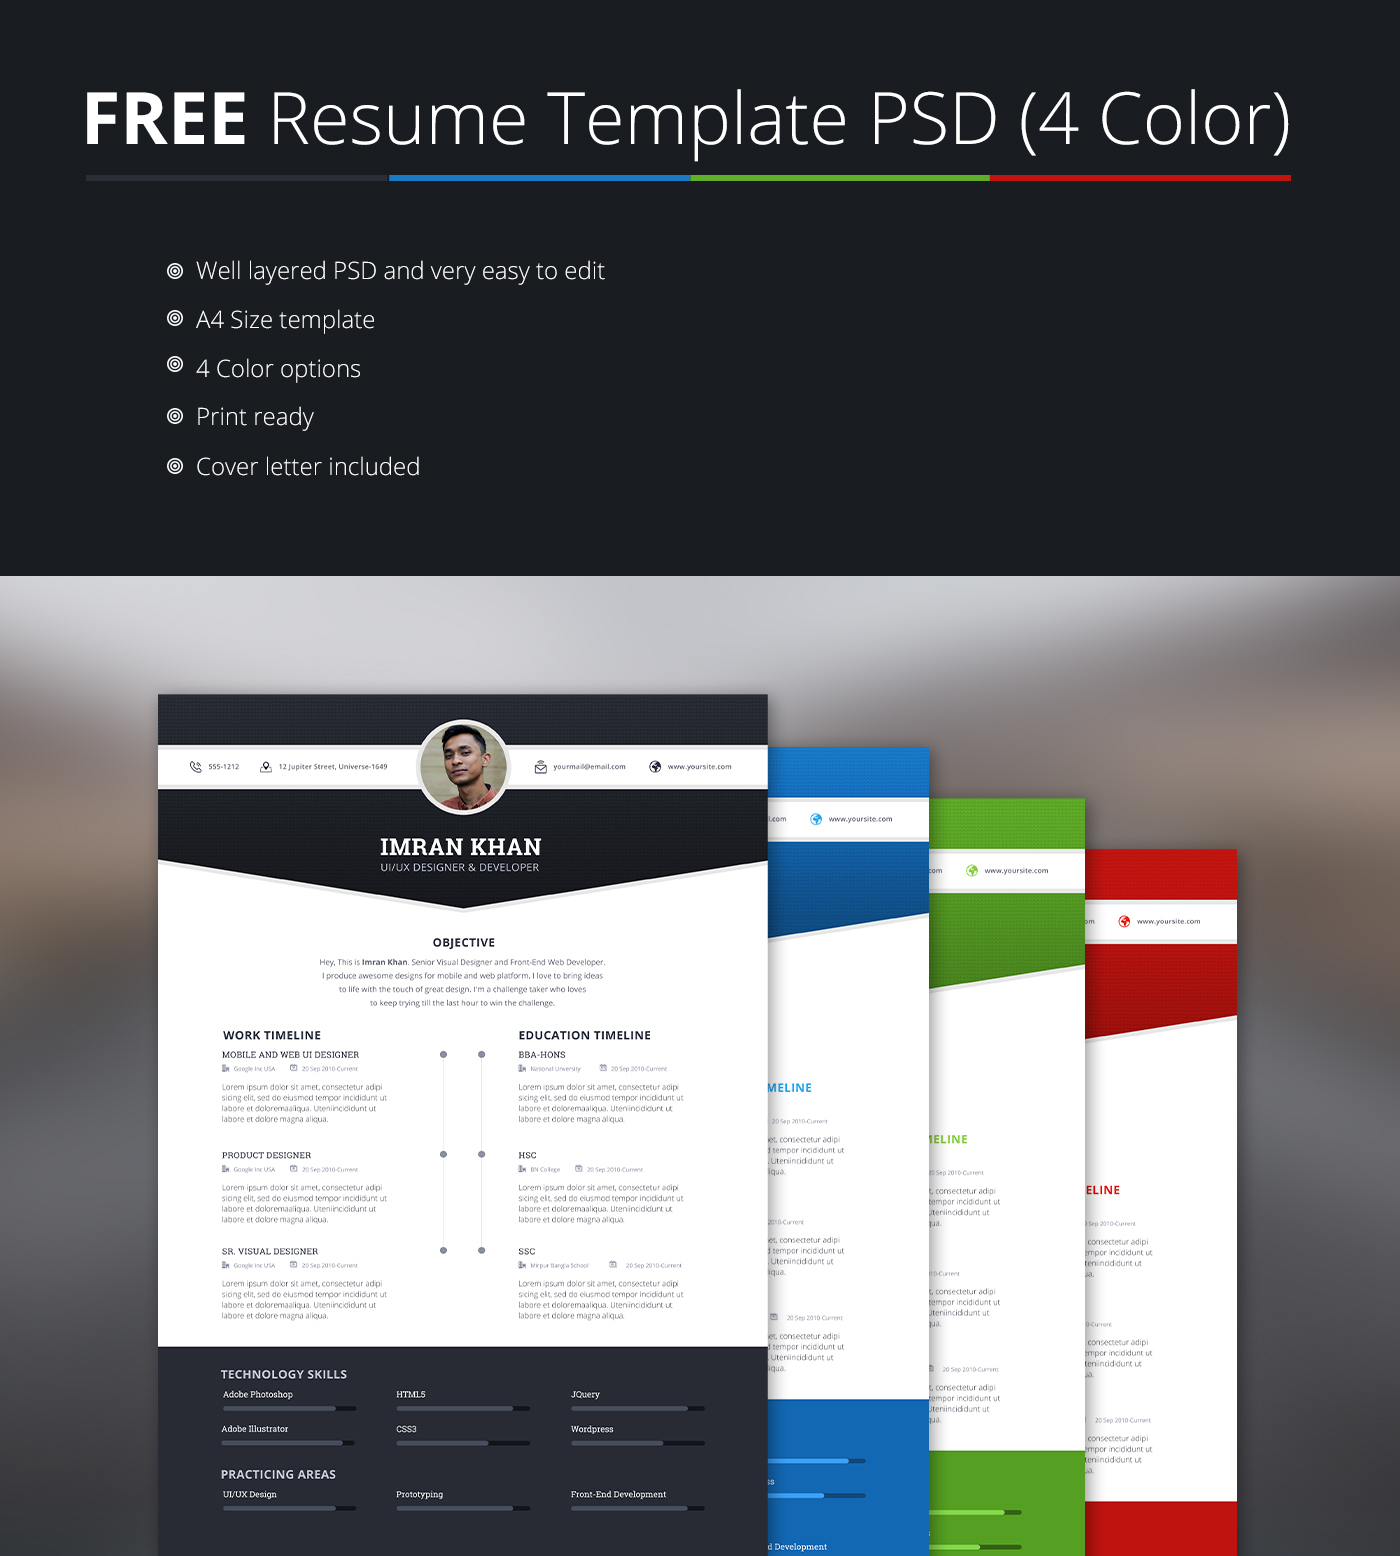 free resume template psd 4 colors on behance - Free Resume Download Templates